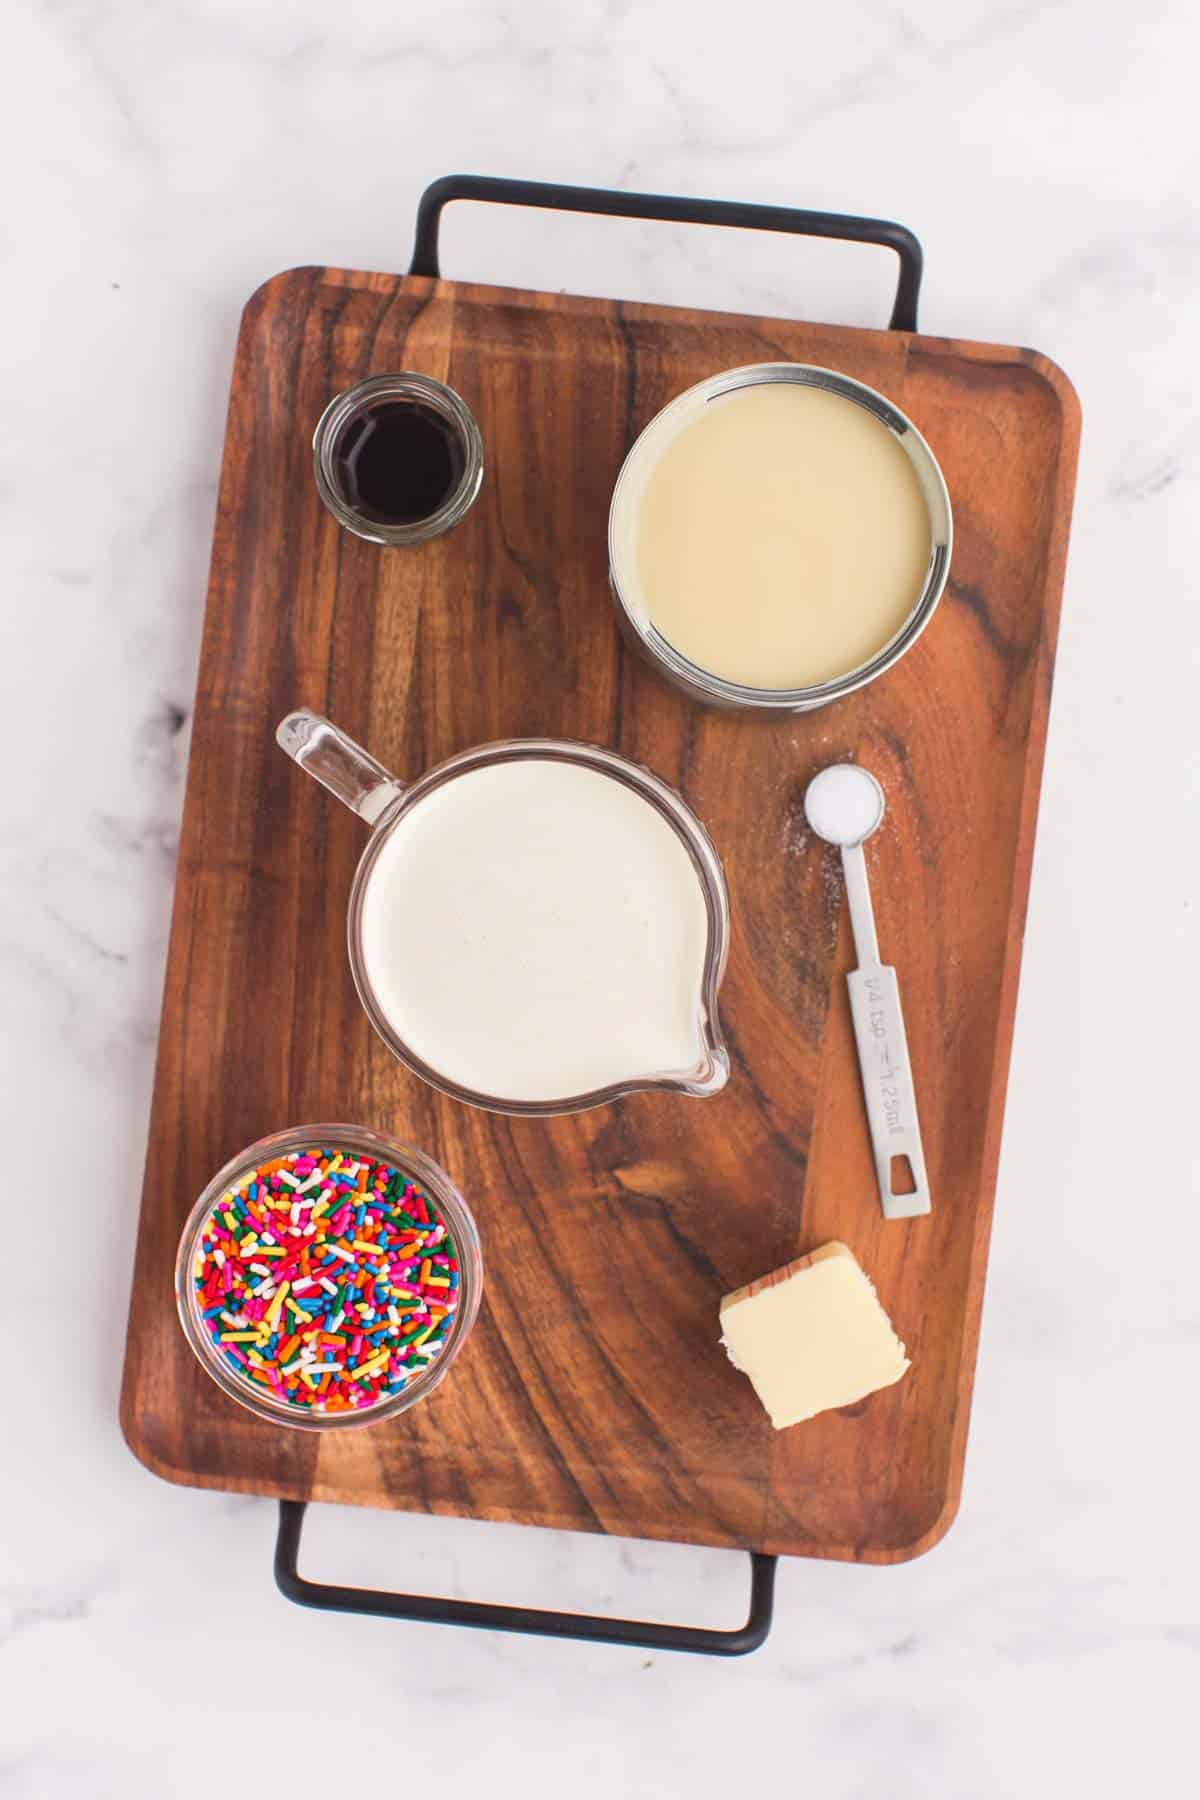 measuring cup of heavy cream, can of sweetened condensed milk, jar of vanilla extract, cube of butter, and a bowl of rainbow sprinkles on a wooden platter